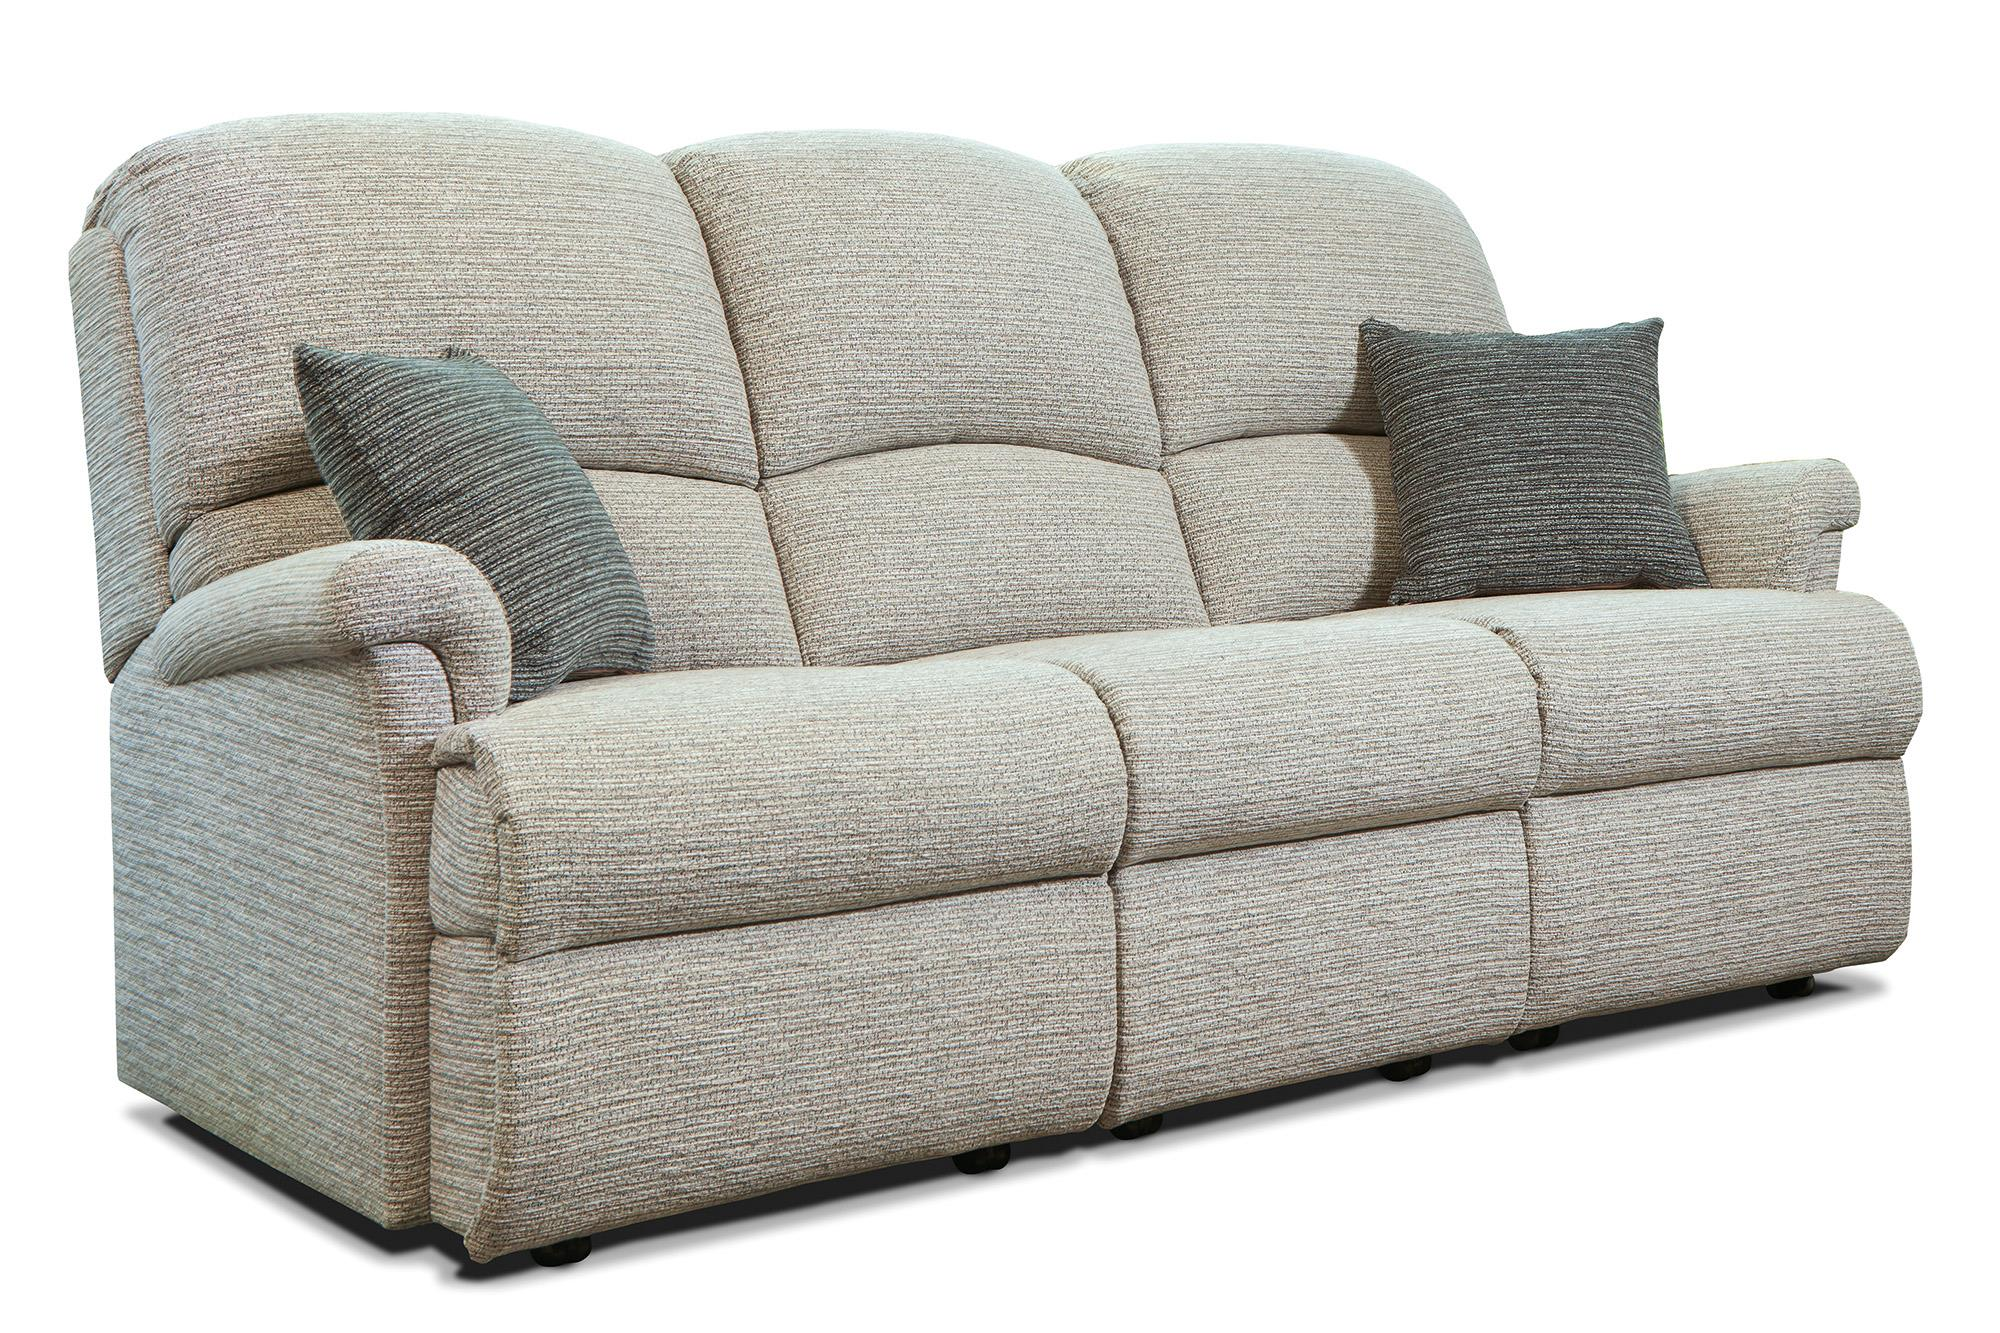 Nevada 3 Str Settee - by Sherborne